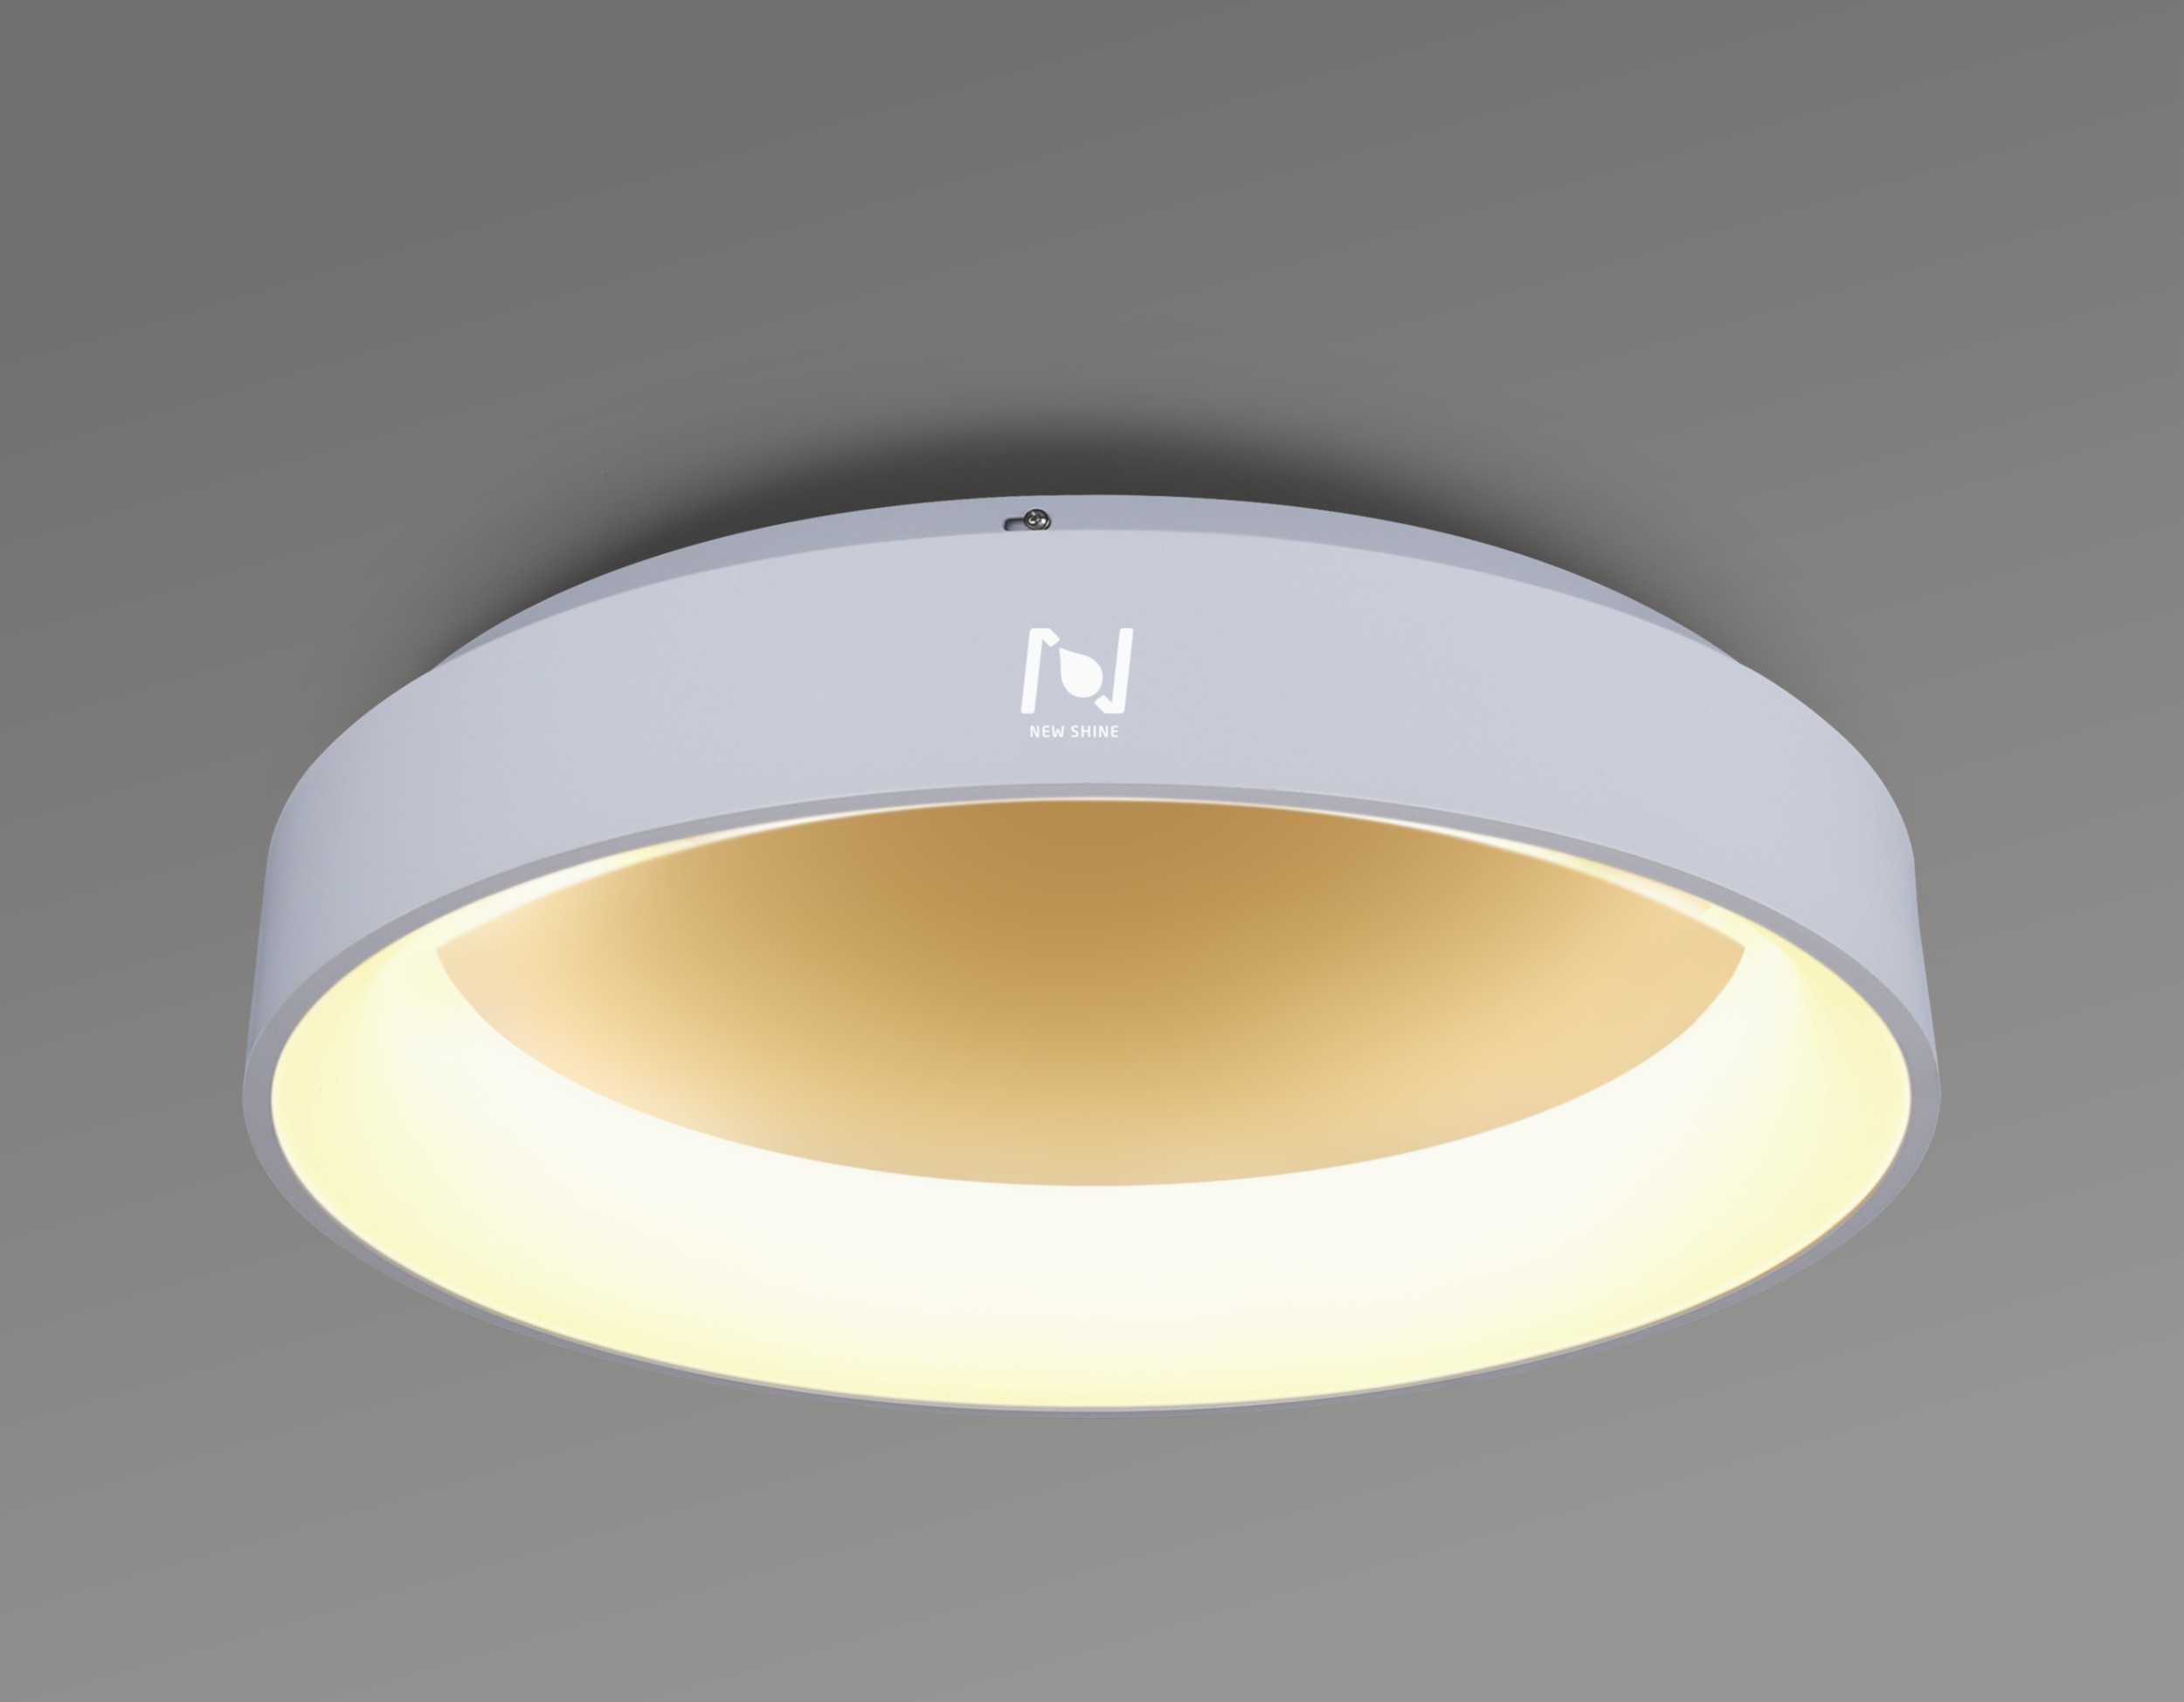 HOT SALE SURFACE MOUNTED ROUND LED DECORATIVE LIGHTING LL0201M-36W